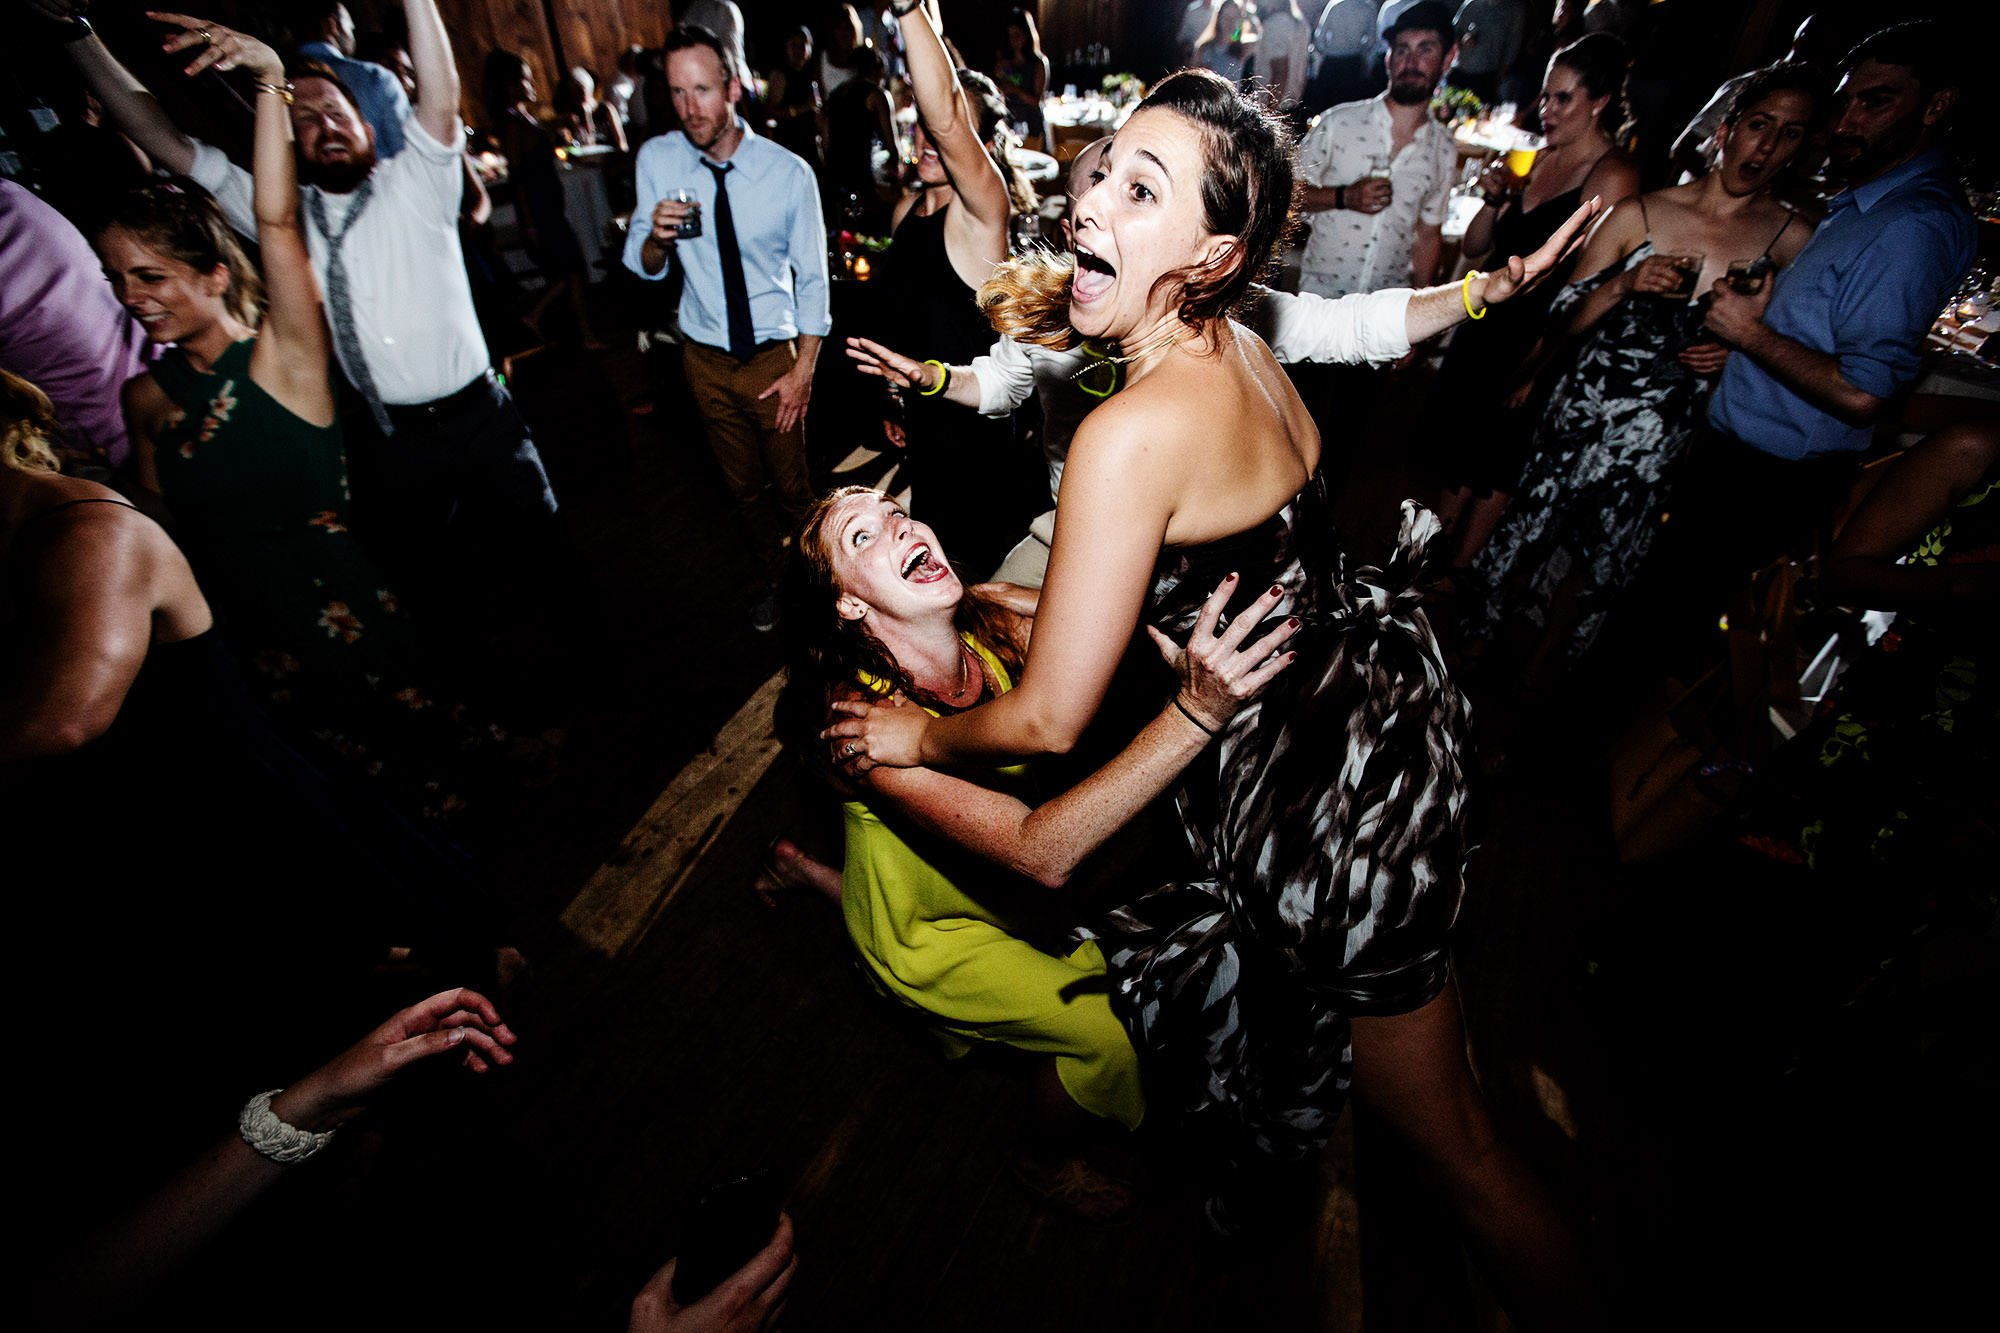 Guests dance during this Mount Hope Farm wedding.